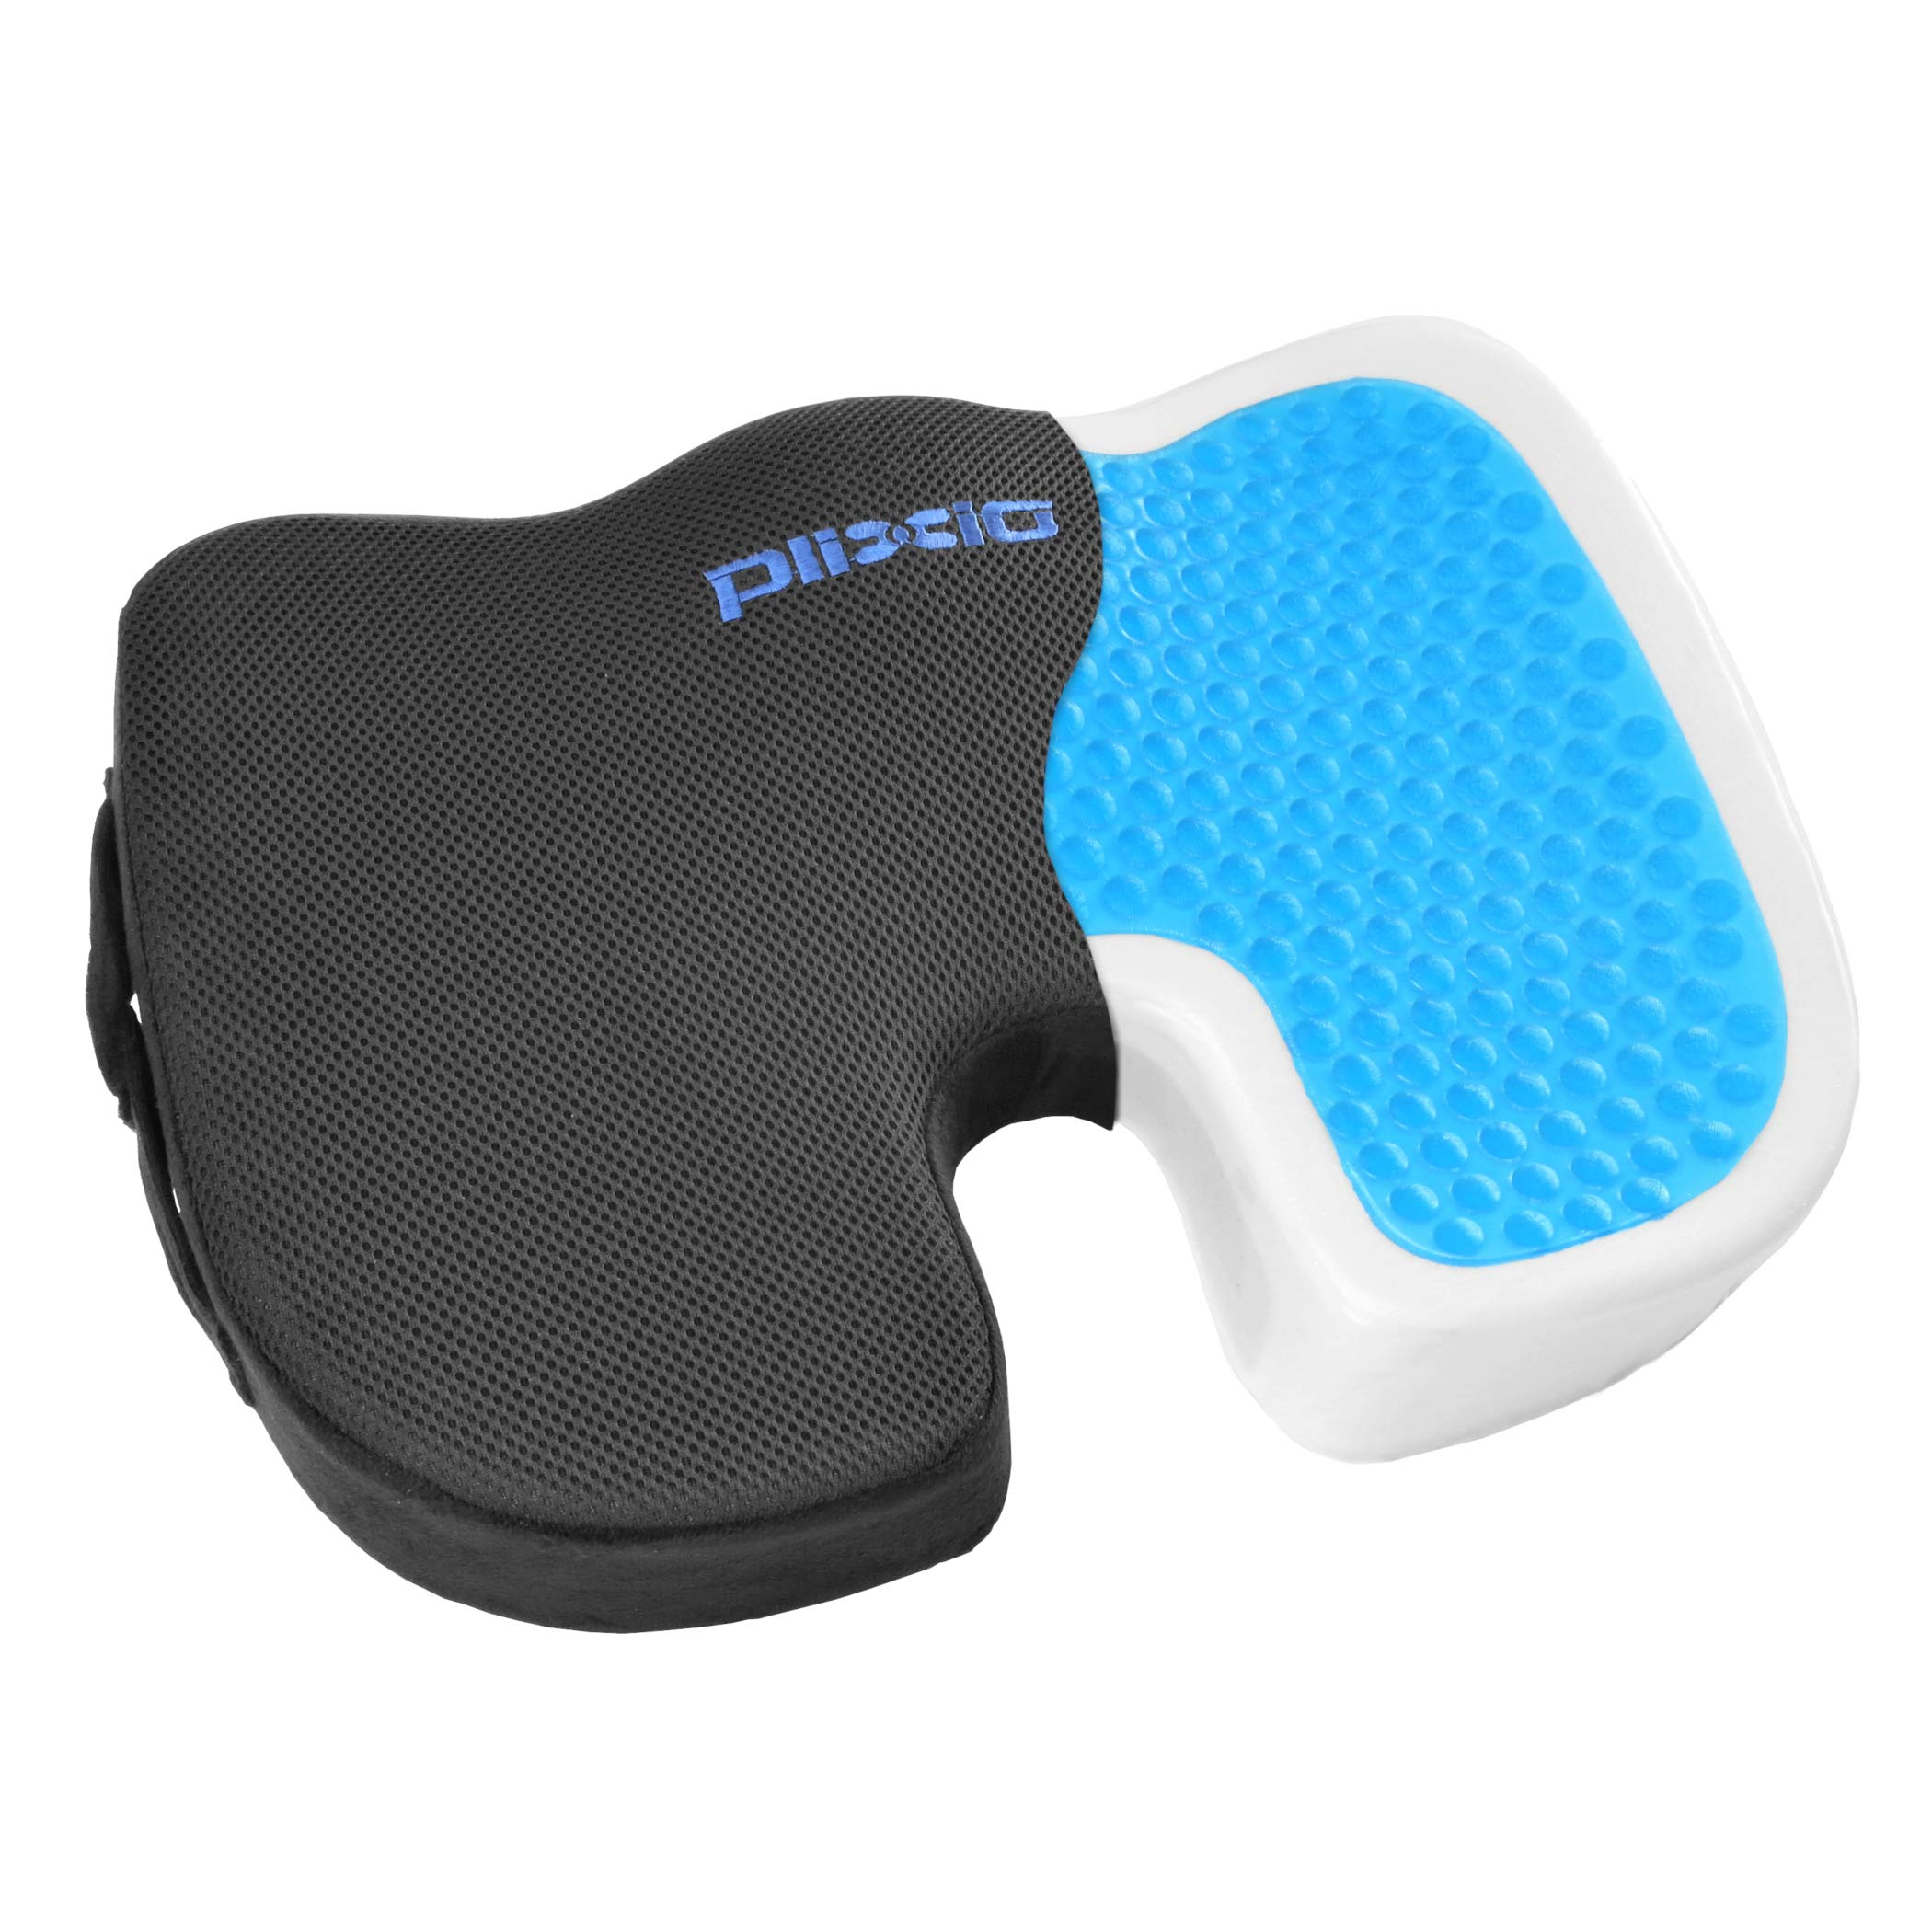 Plixio Gel Seat Cushion Memory Foam Chair Pillow with Cooling Gel for Sciatica, Coccyx, Back & Tailbone Pain Relief - Orthopedic Chair Pad for Support in Office Desk Chair, Car, Wheelchair & Airplane